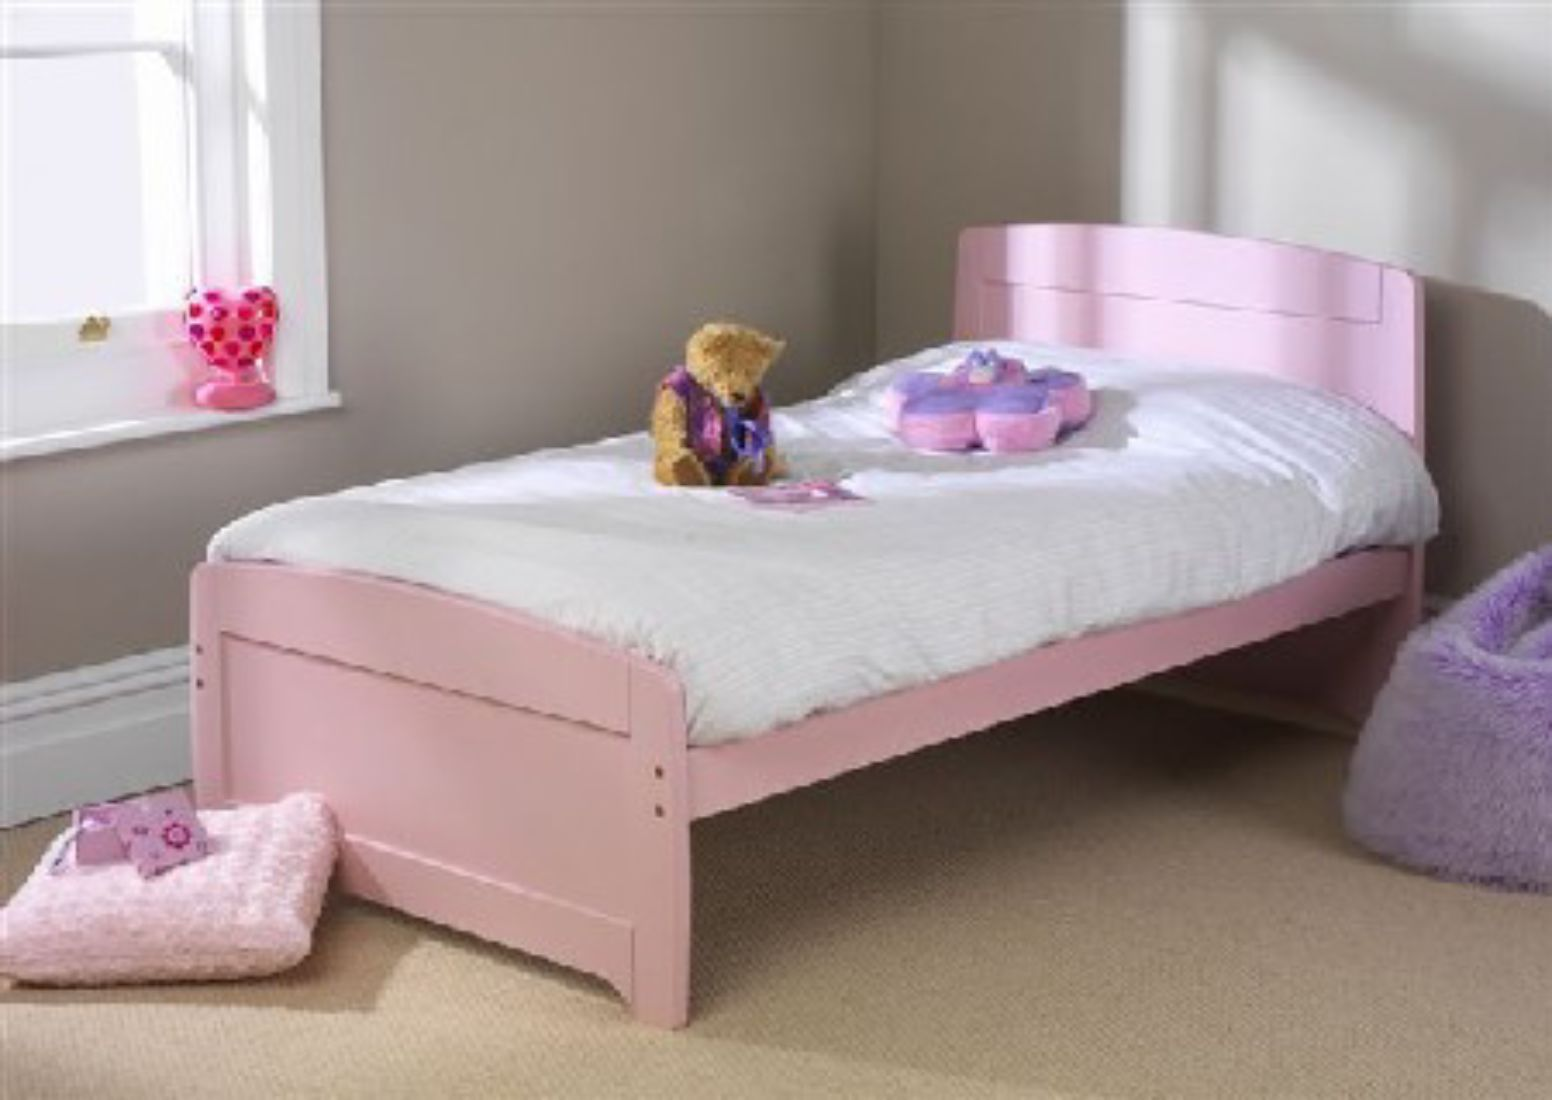 Latest Single Beds : can help you through the bed-buying process. Simon Bambridge of Bed ...